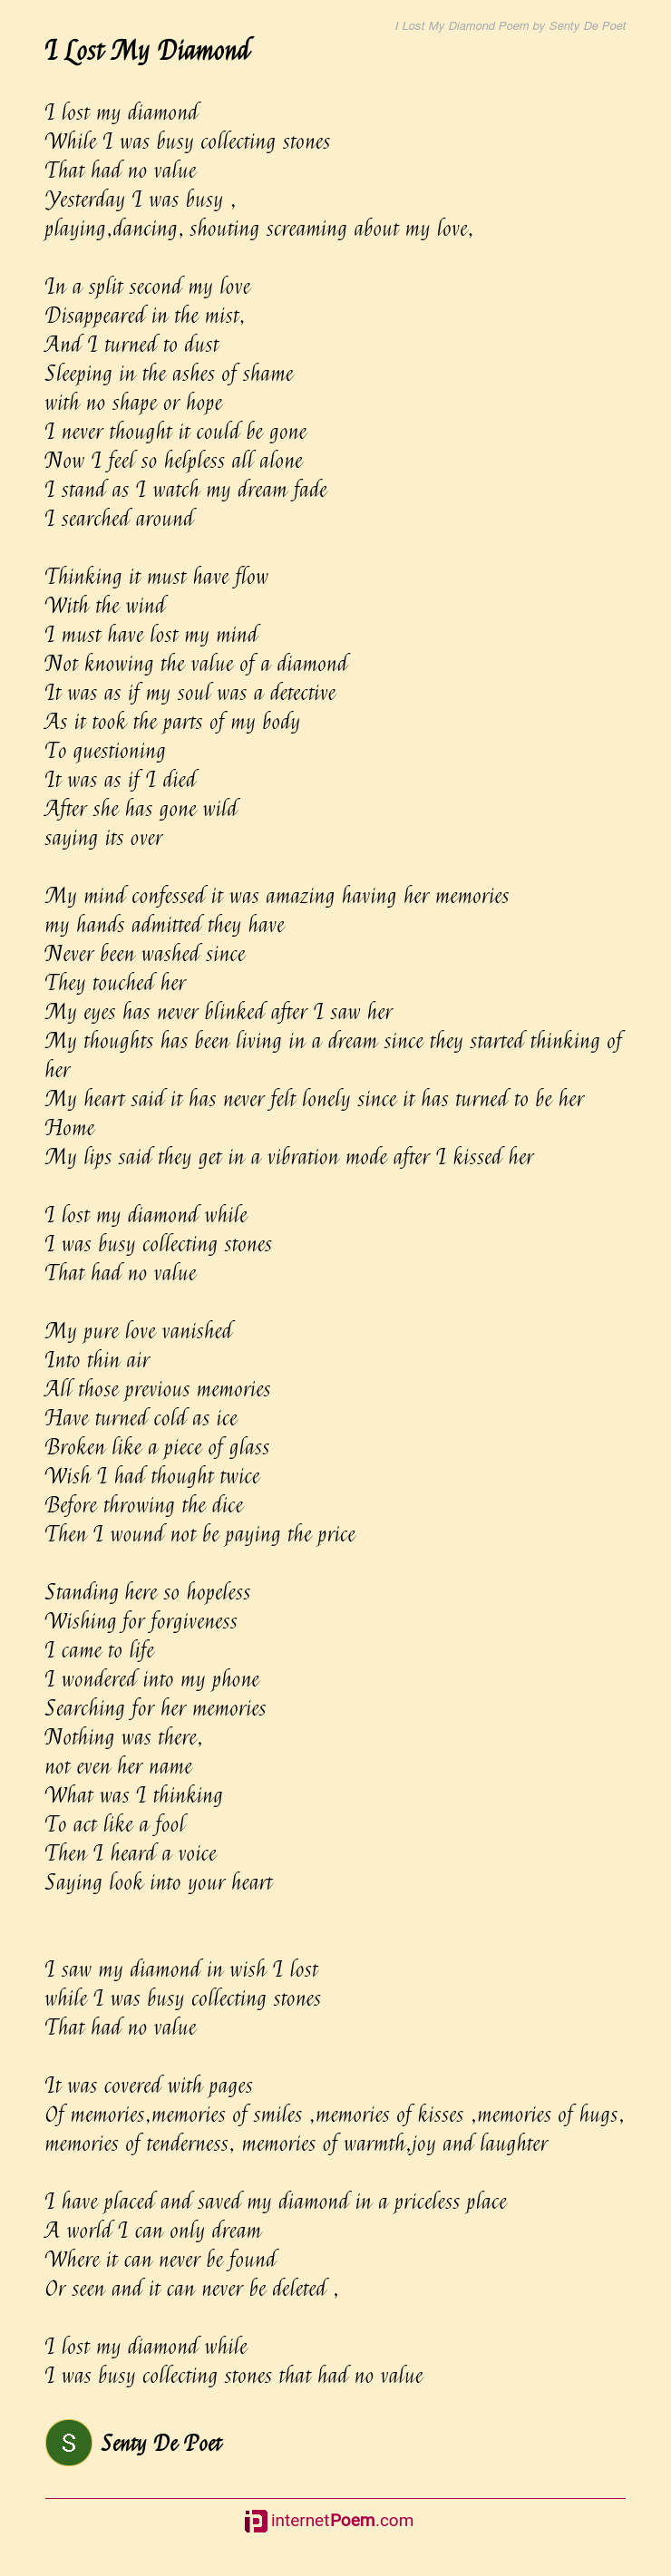 I Lost My Diamond Poem By Senty De Poet